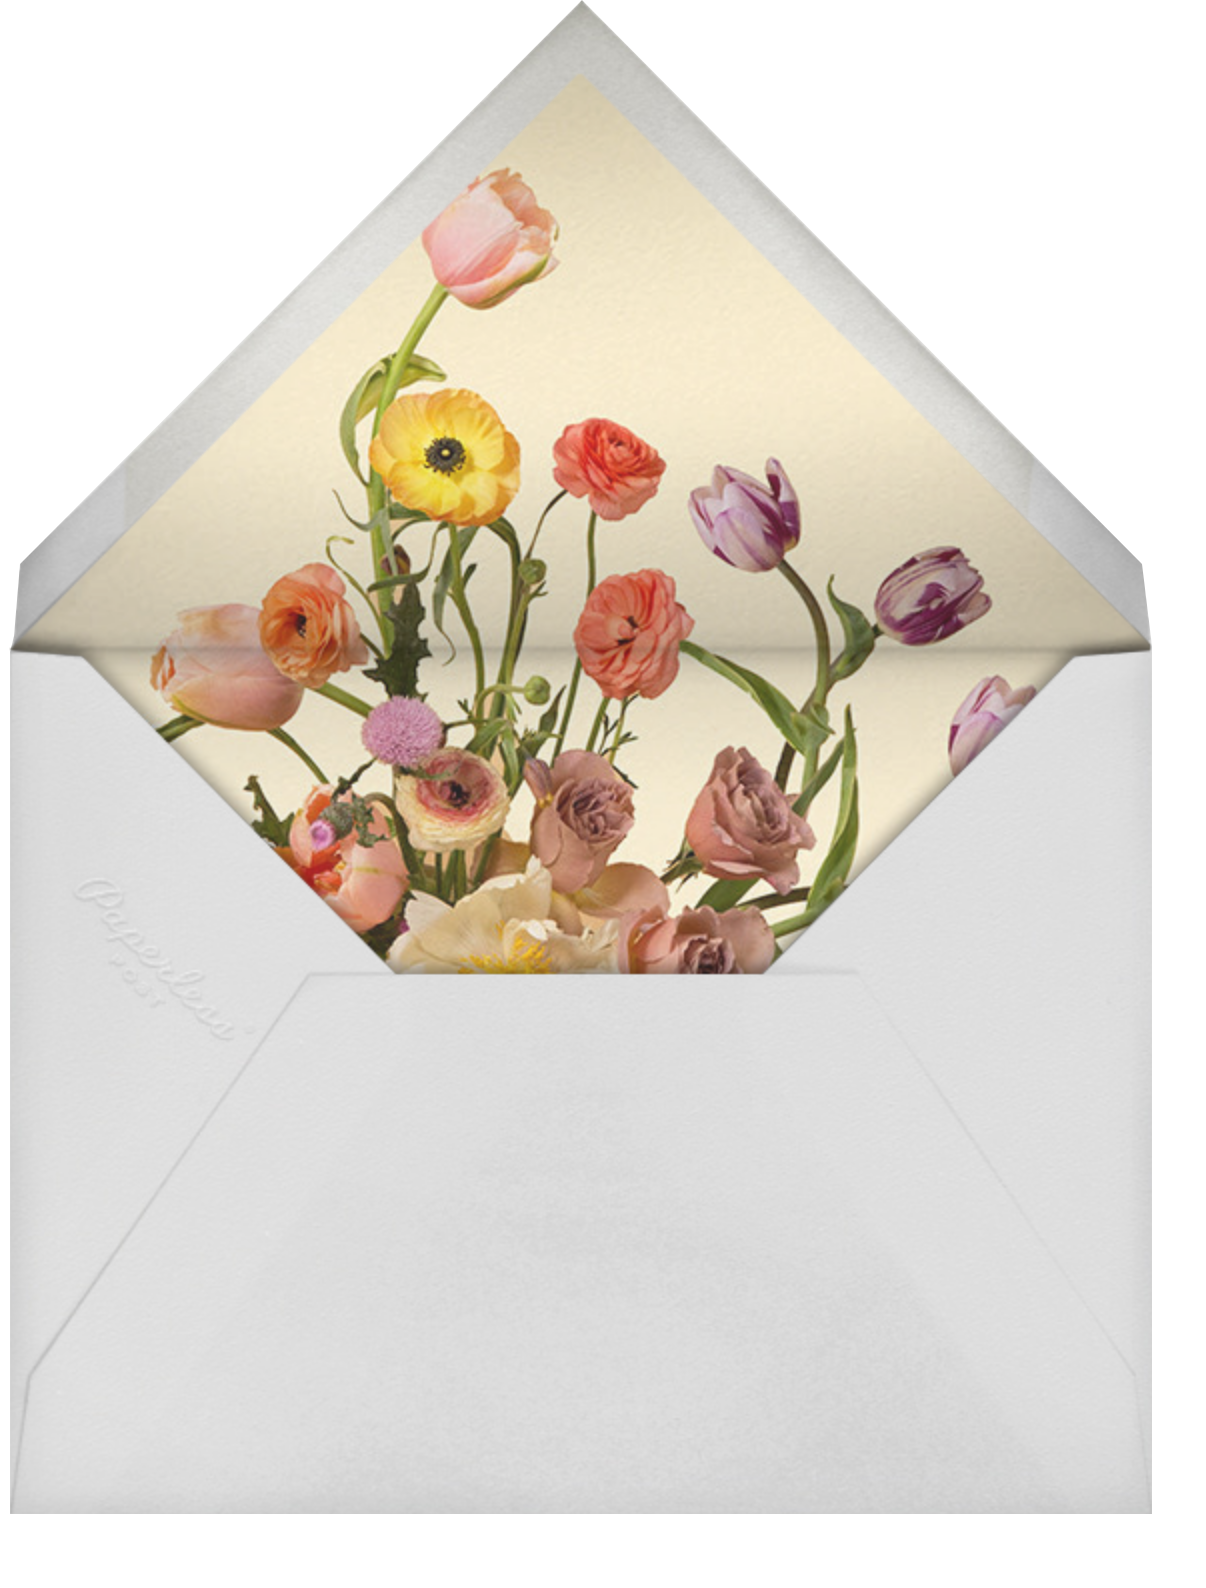 Prairial Photo - Putnam & Putnam - Adult birthday - envelope back